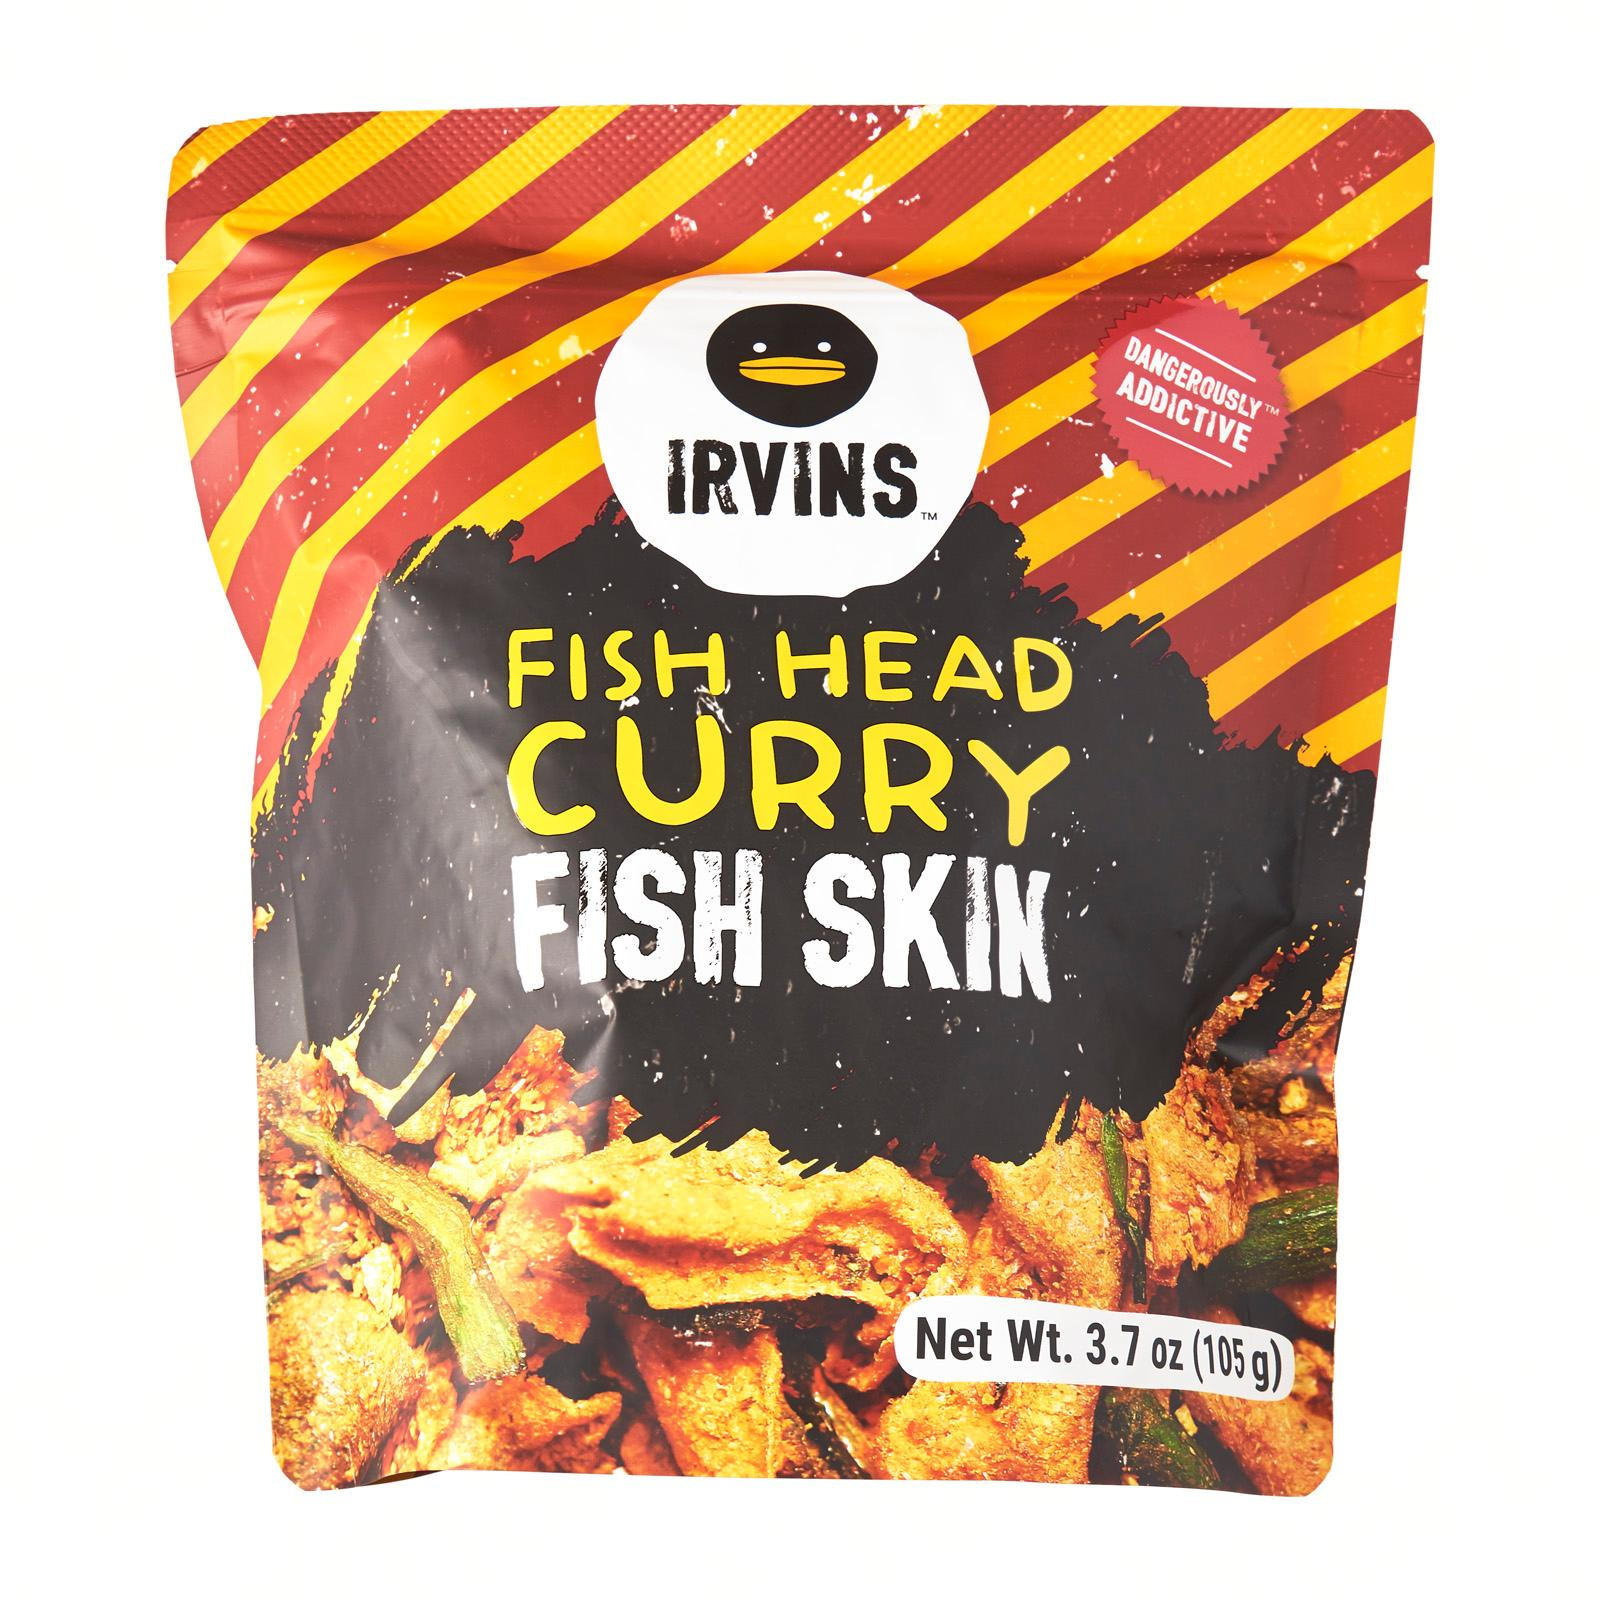 Irvins Salted Egg Fish Head Curry Fish Skin Snacks - Small